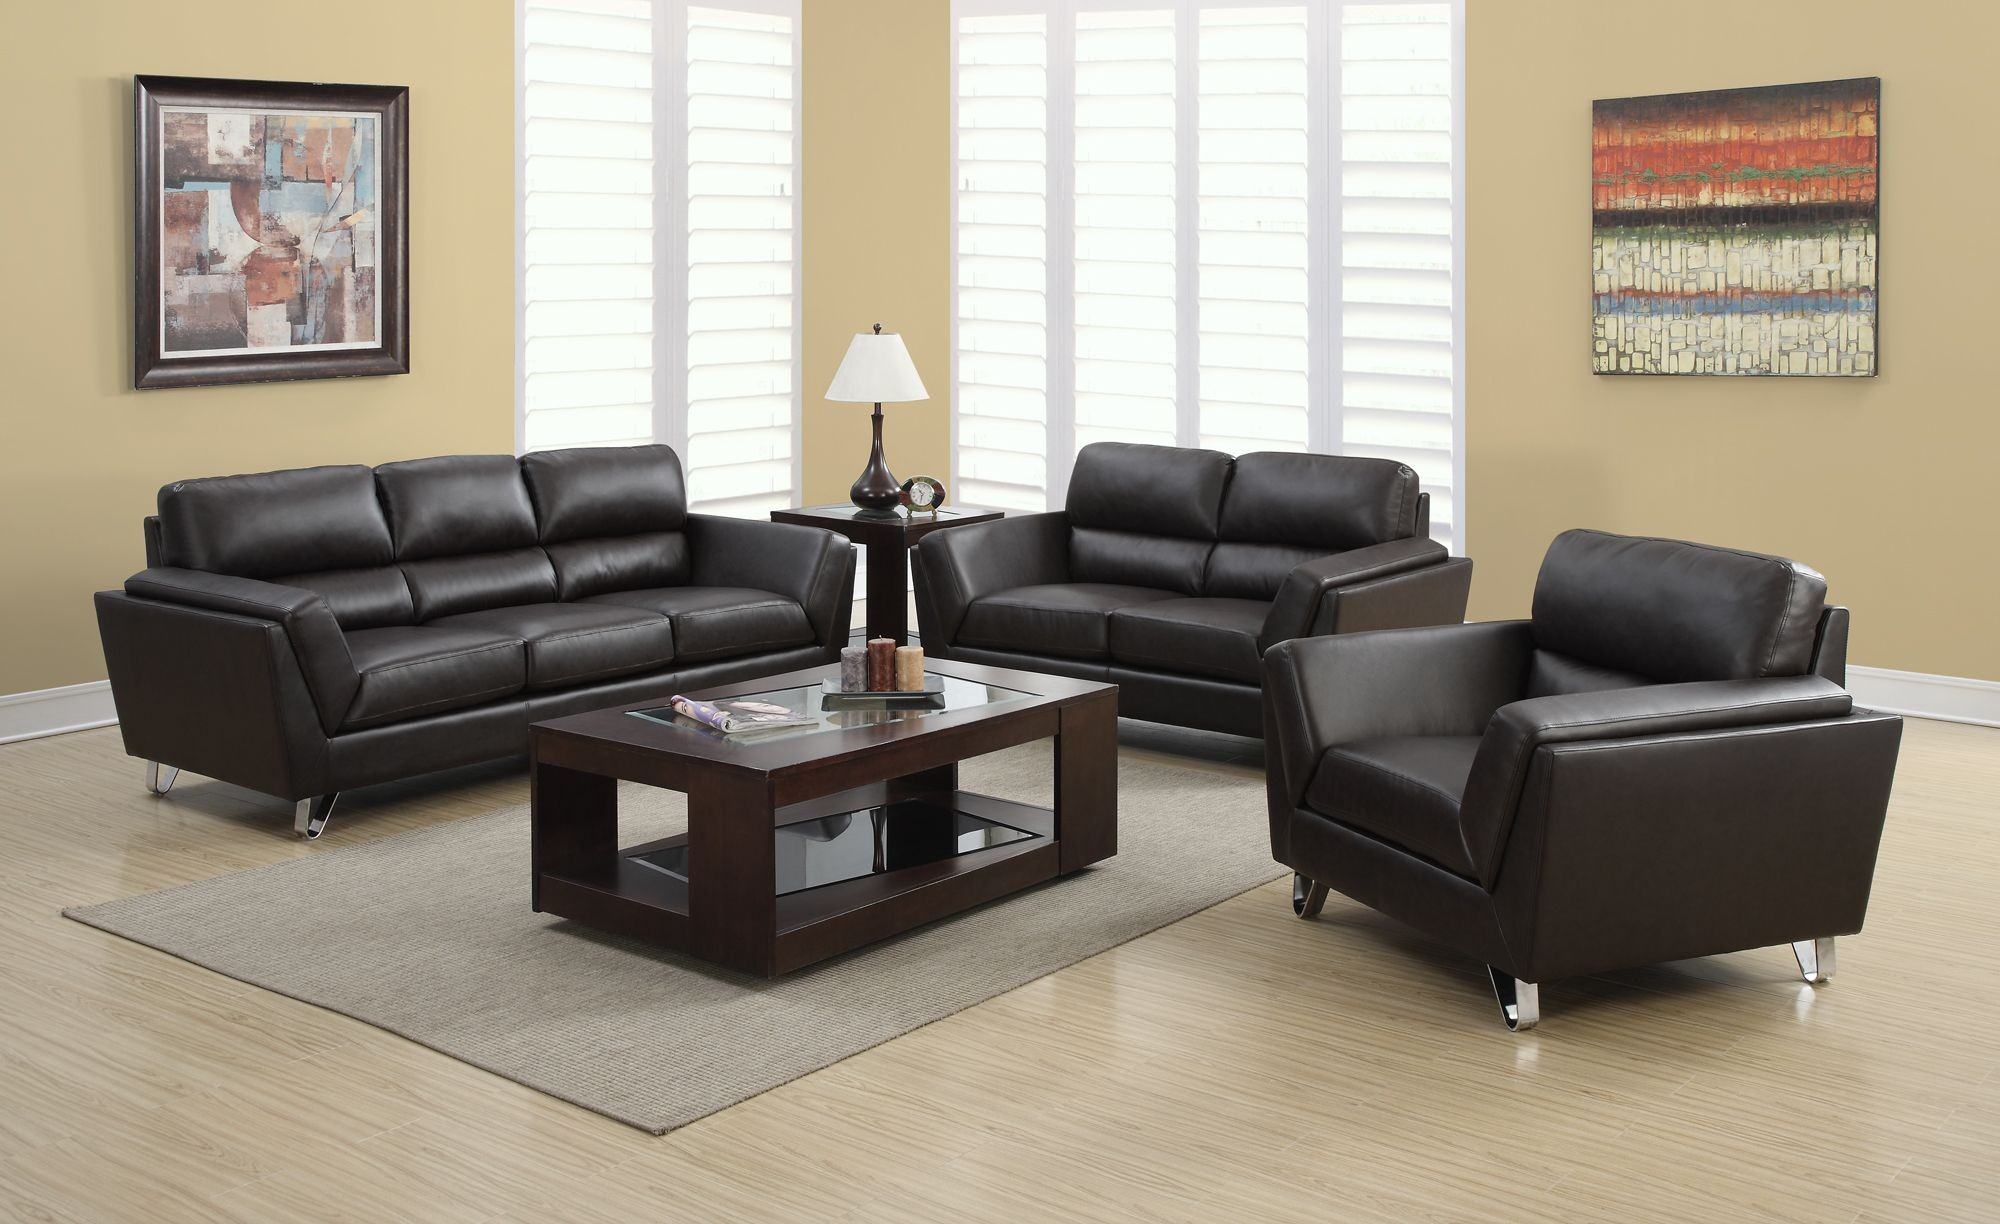 8210br dark brown bonded leather living room set 8210br monarch. Black Bedroom Furniture Sets. Home Design Ideas